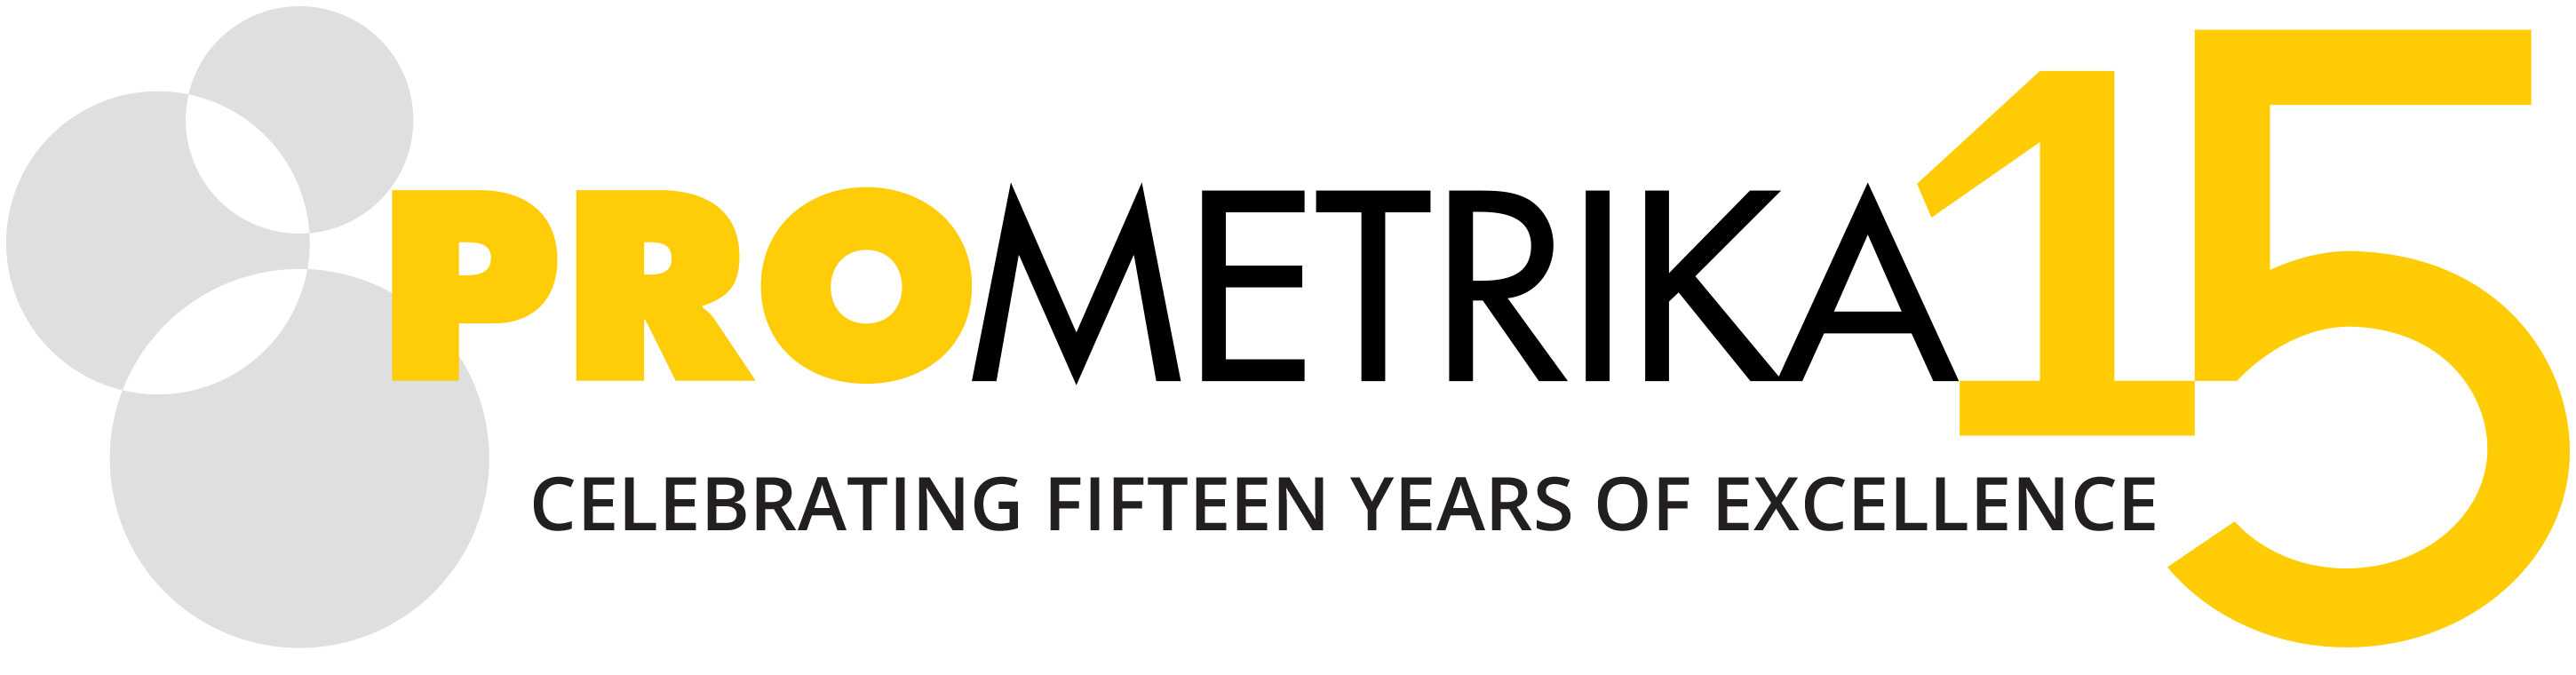 PROMETRIKA15   Celebrating Fifteen Years of Excellence